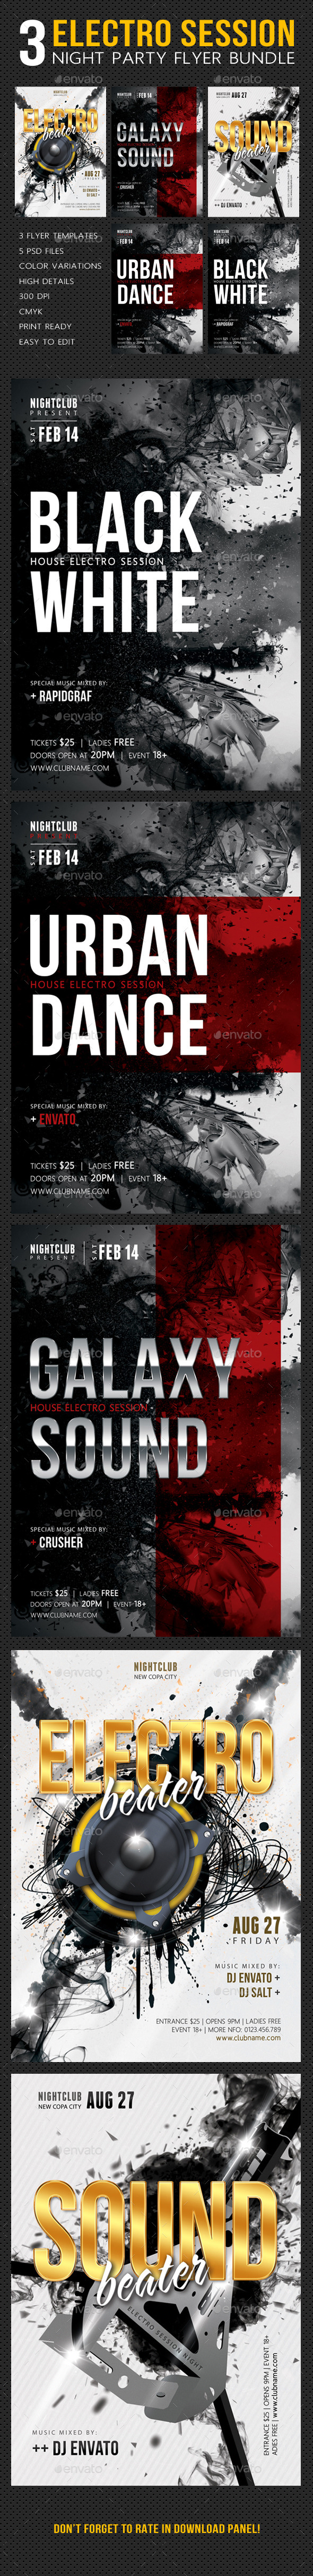 GraphicRiver 3 Electro Session Night Party Flyer Bundle 11063902